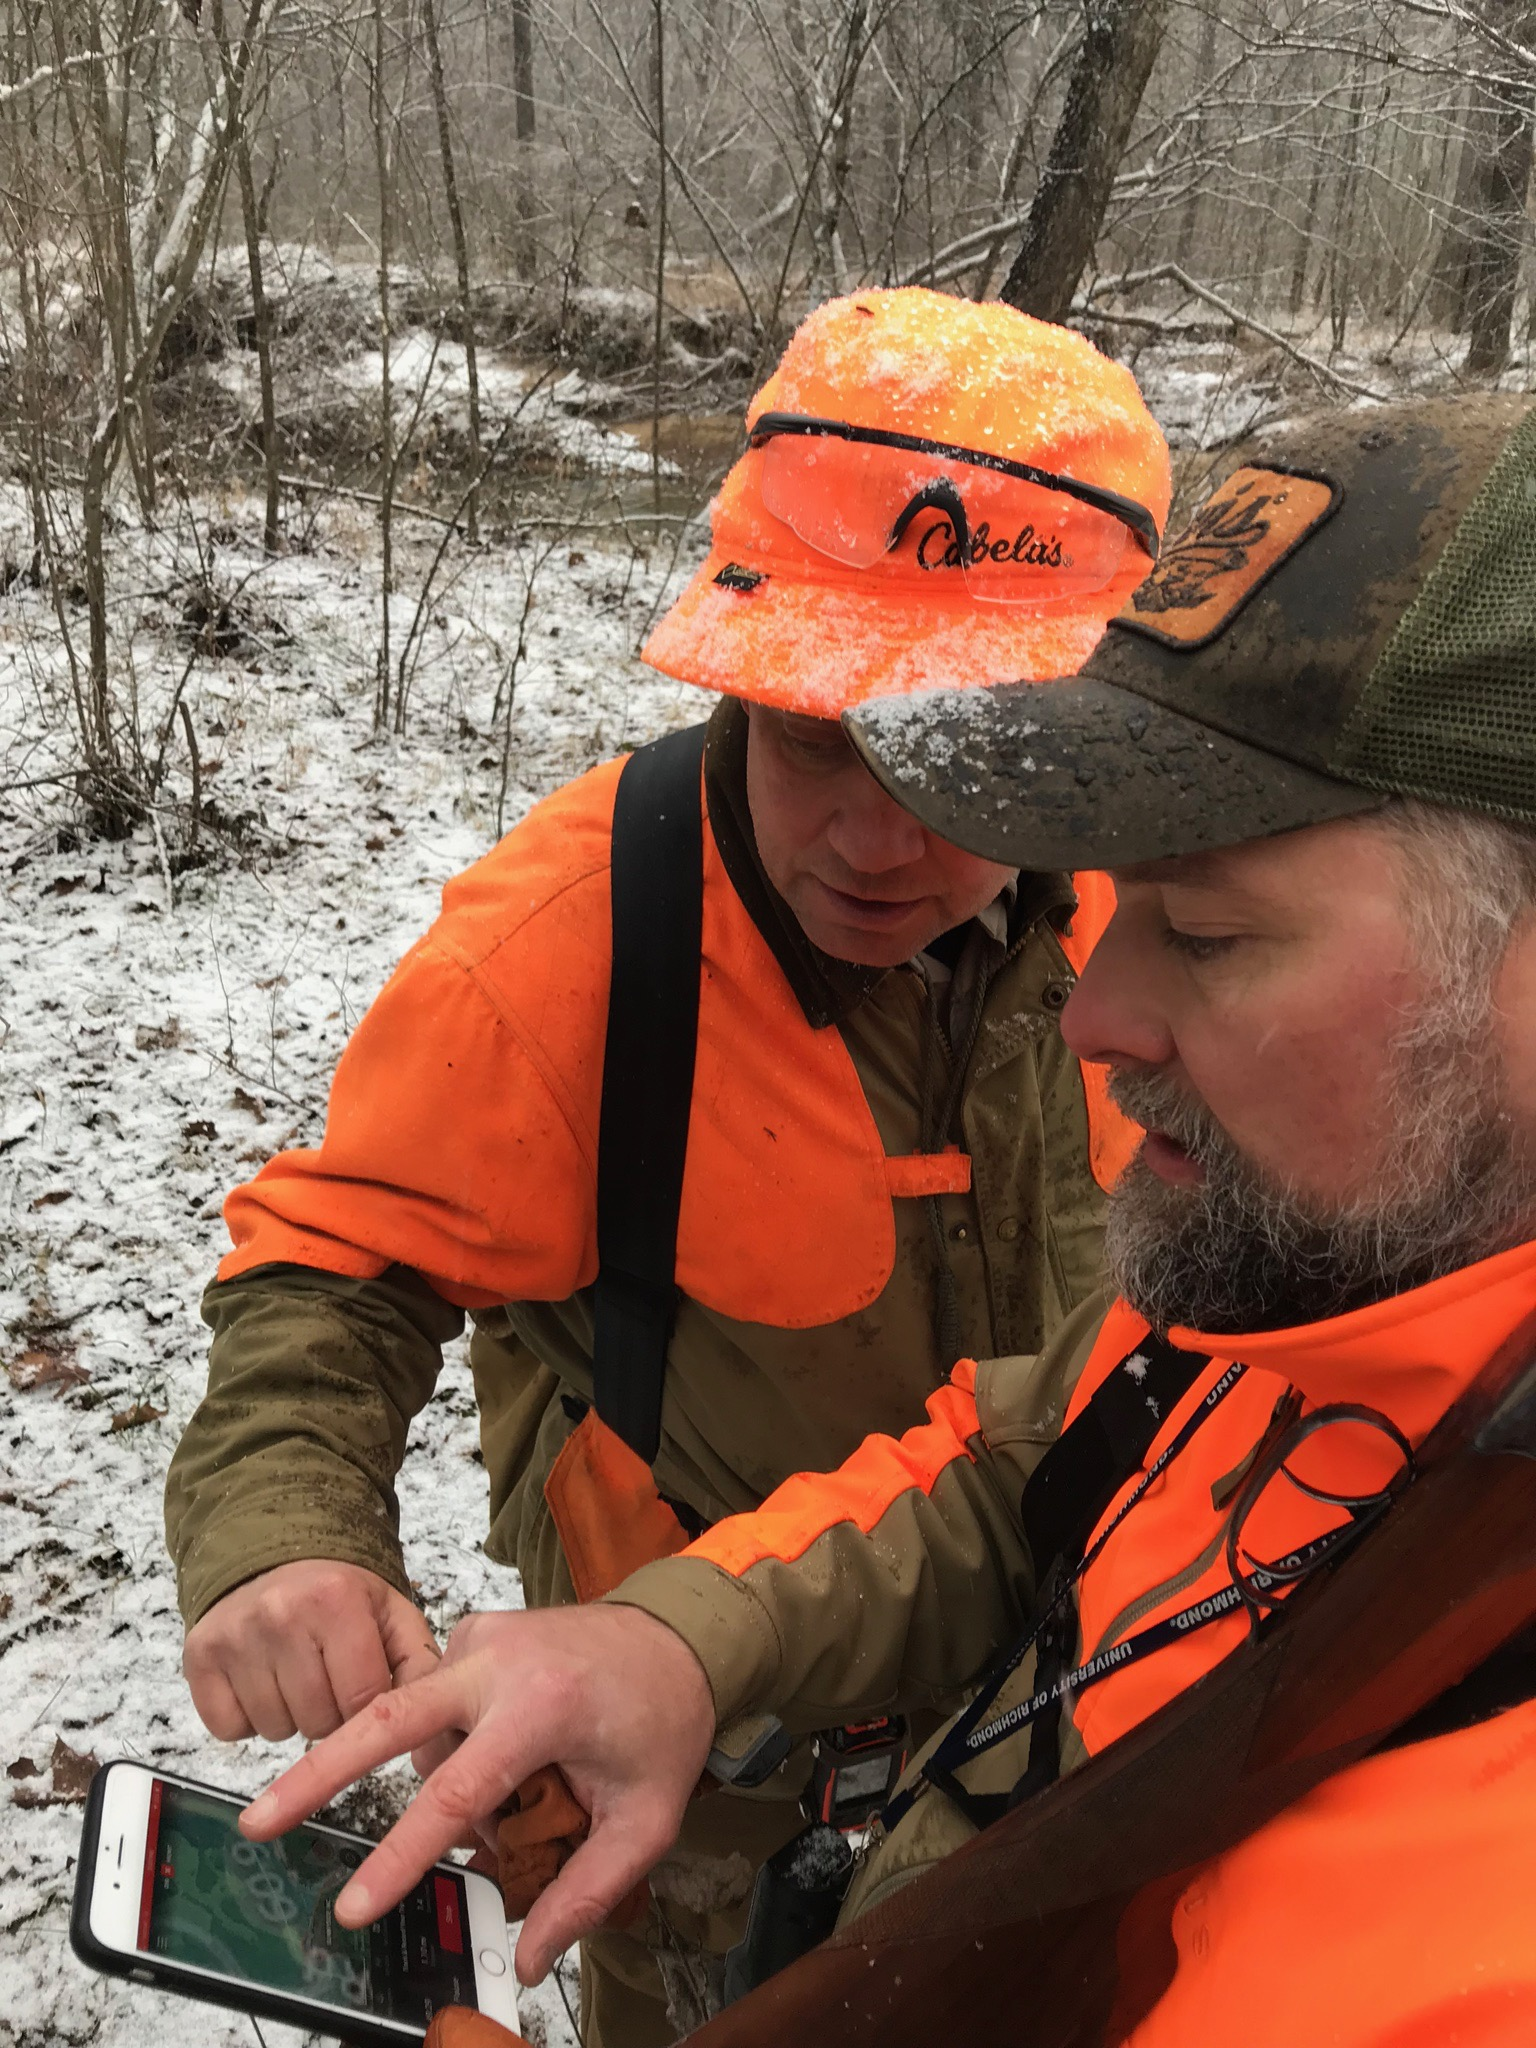 Finding our way back to the most productive coverts using  OnX GPS hunting app